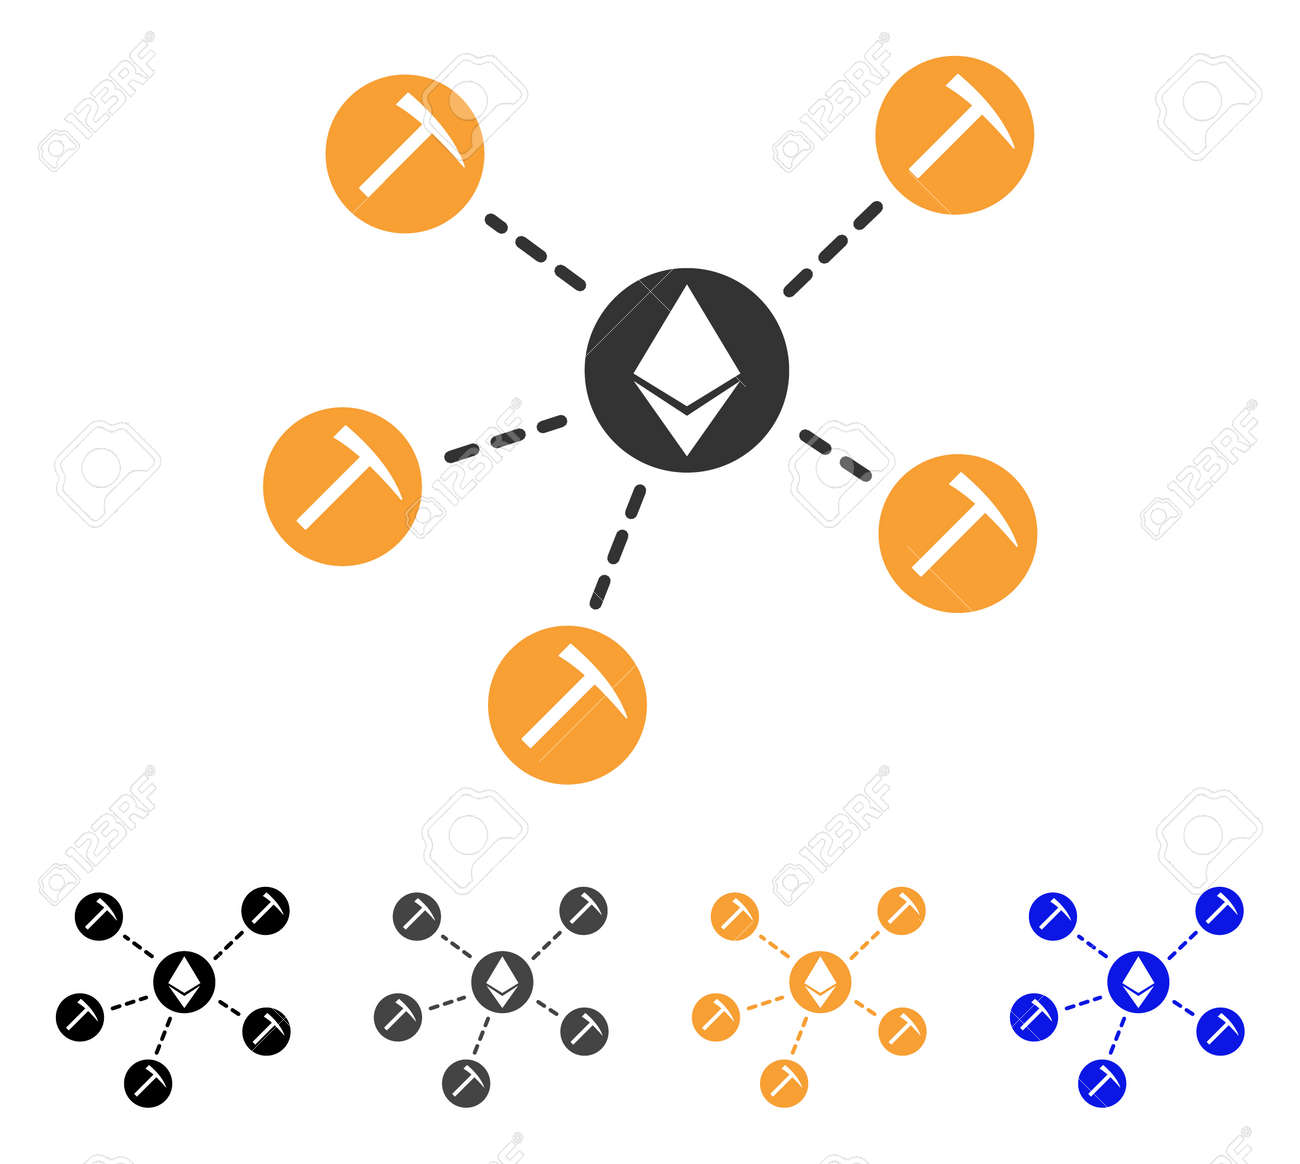 mining pool cryptocurrency